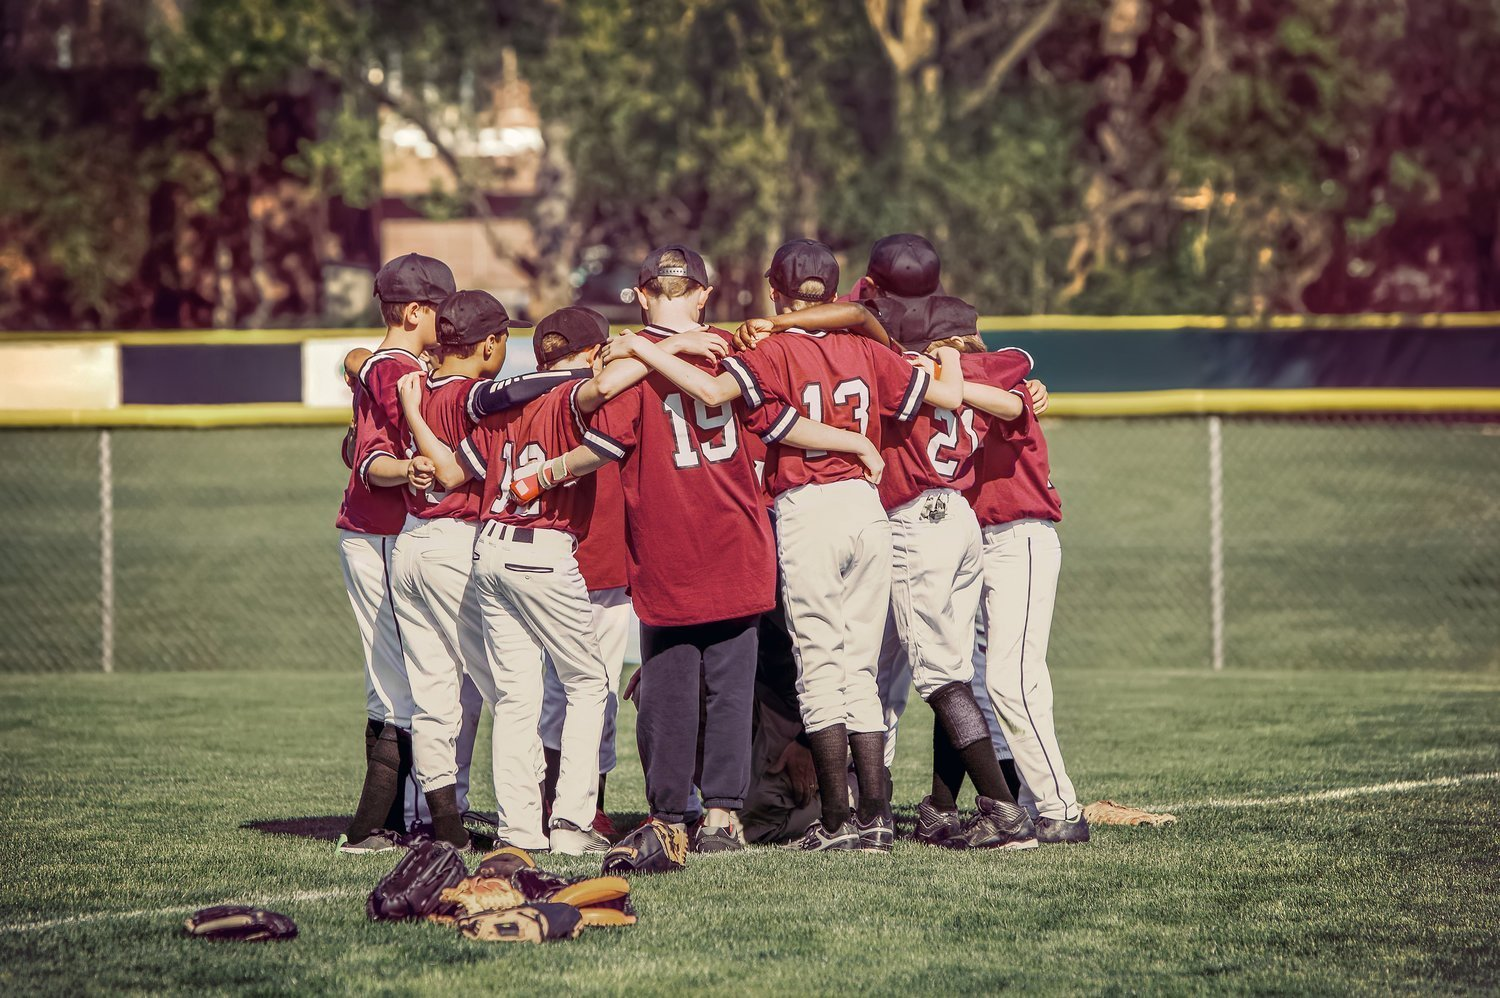 How to Start a Sports Organization: Resources and Budget